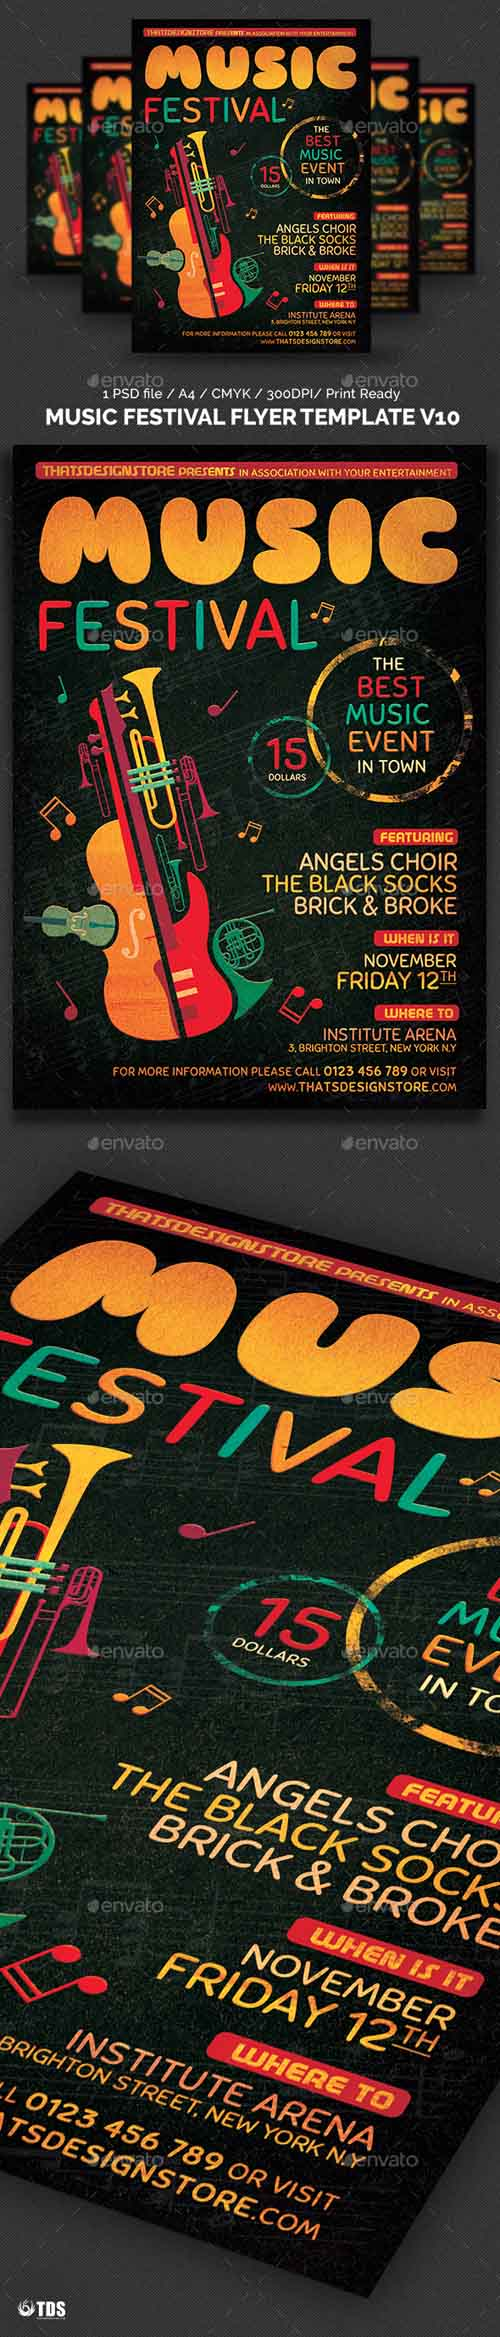 Music Festival Flyer Template V10 12479217